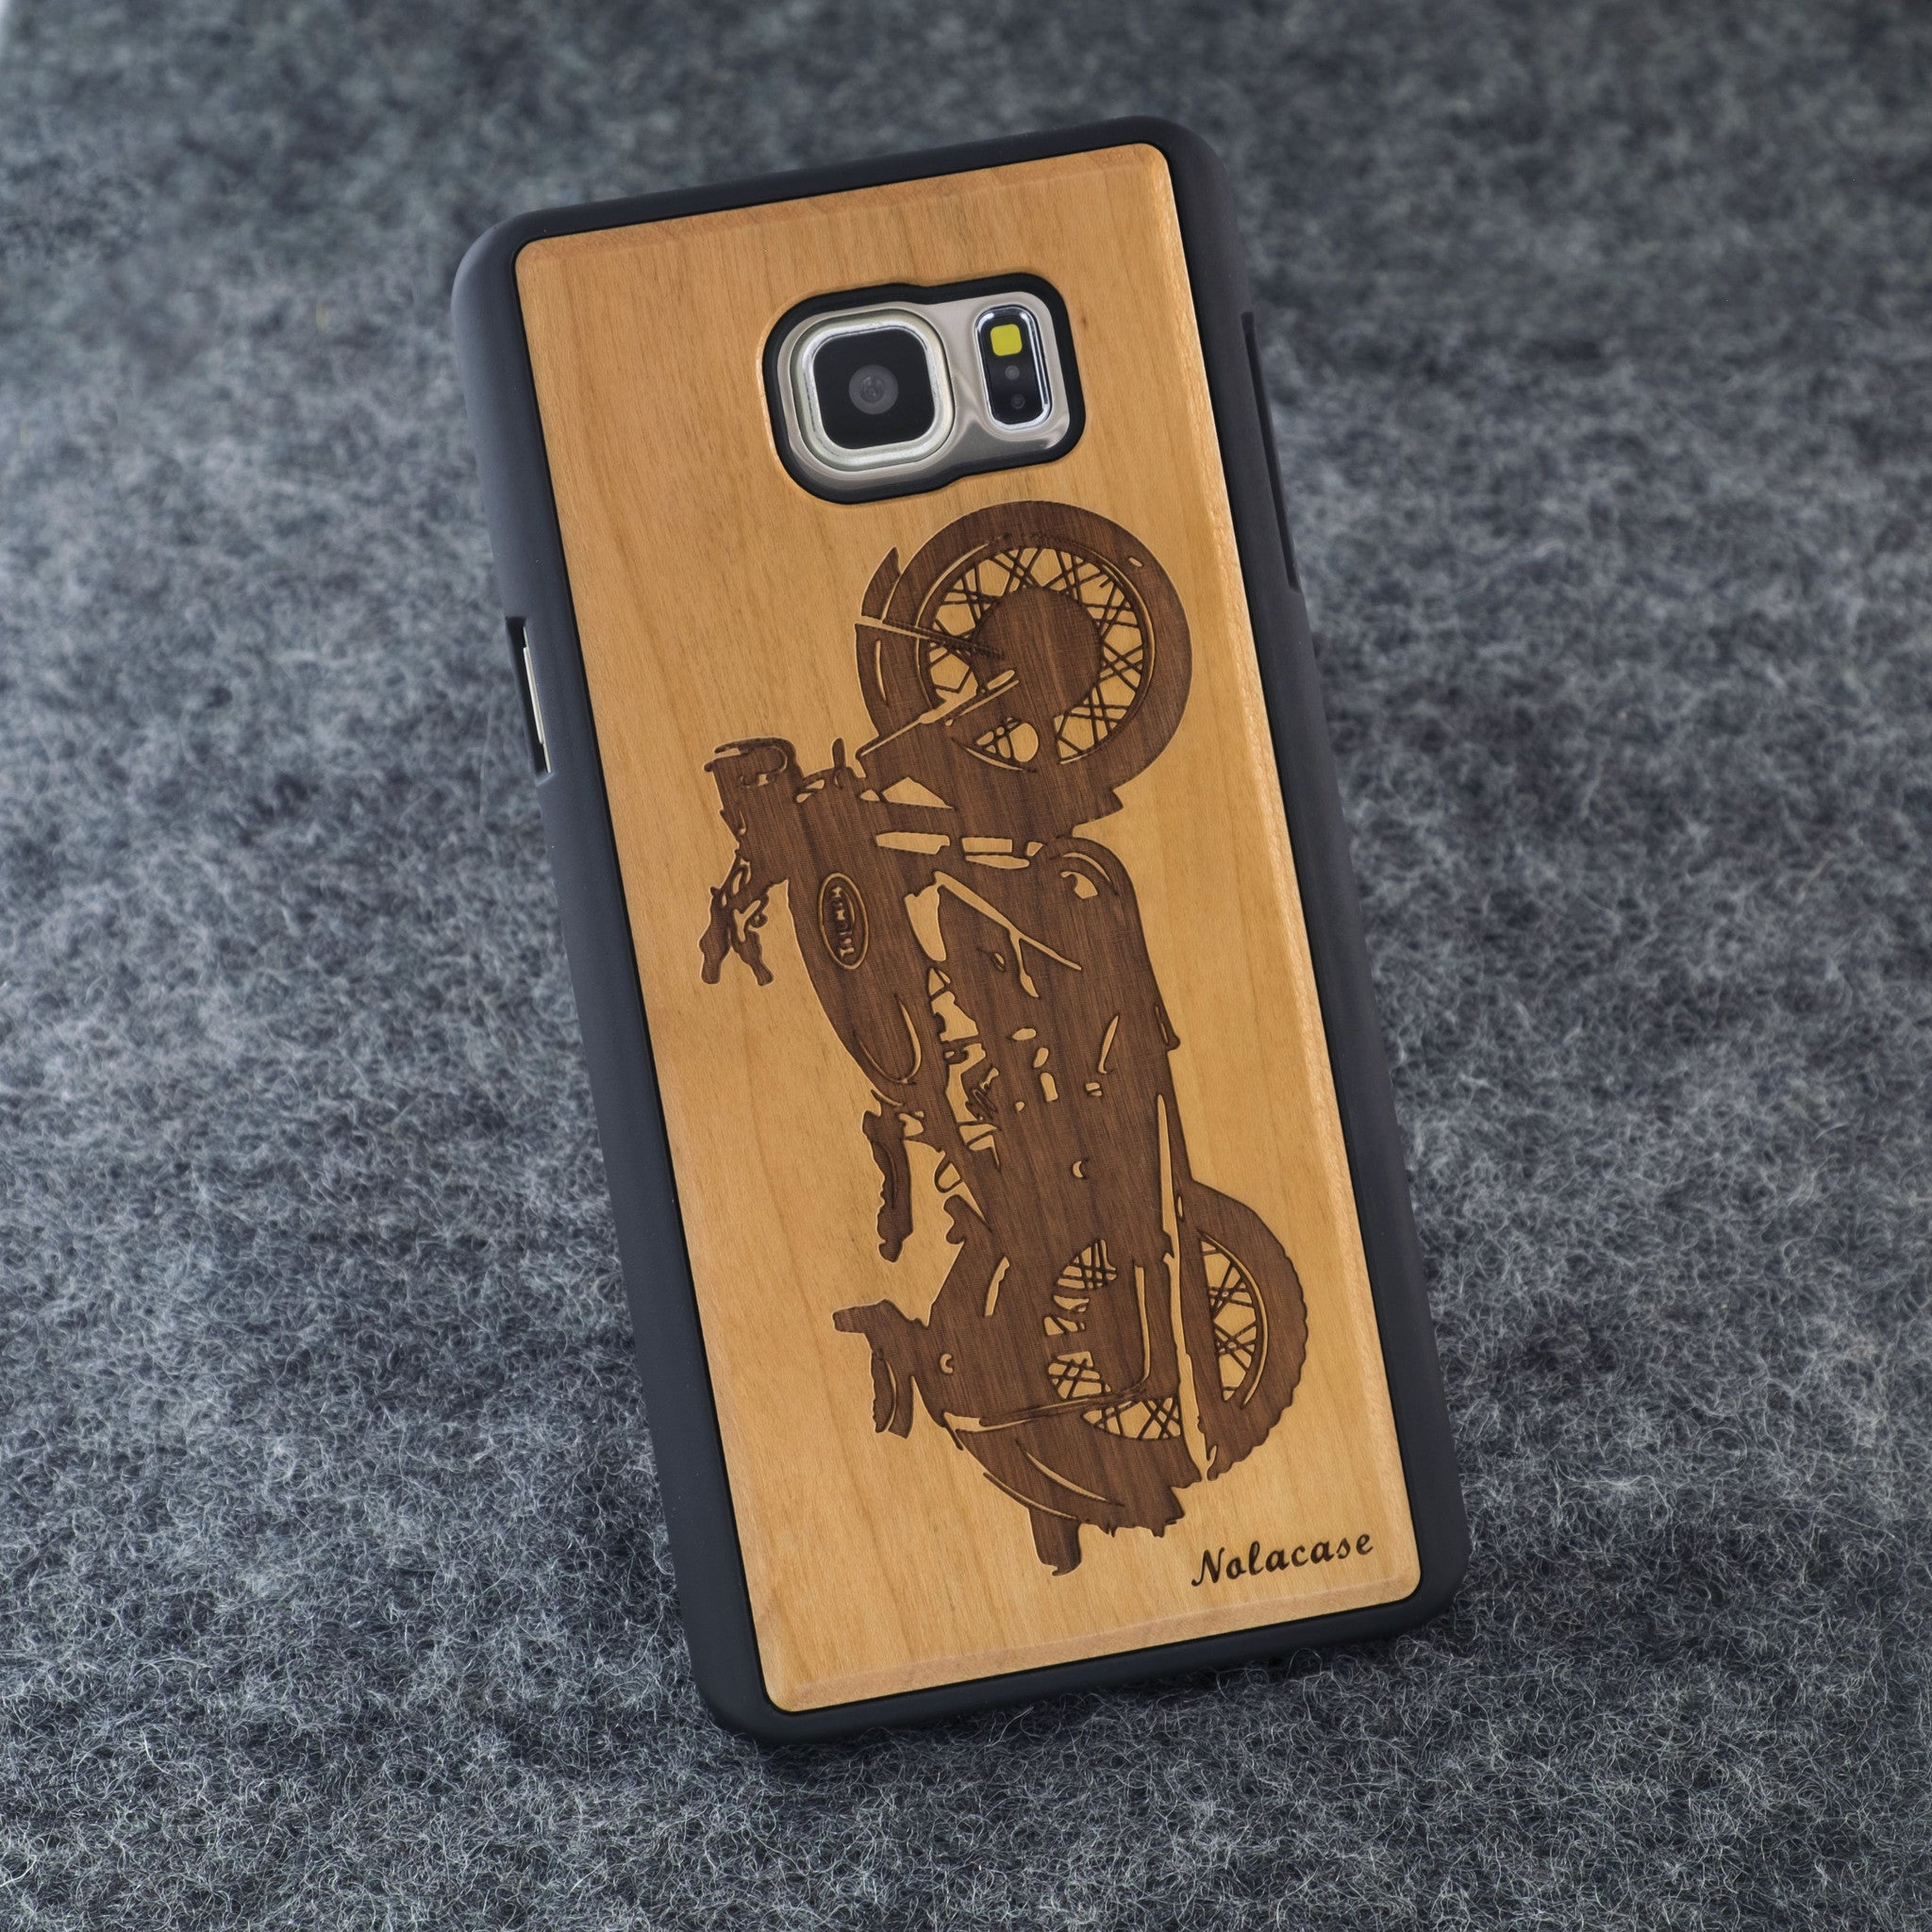 Samsung Note 5 Motorcycle Slim Wood Case - NOLACASE